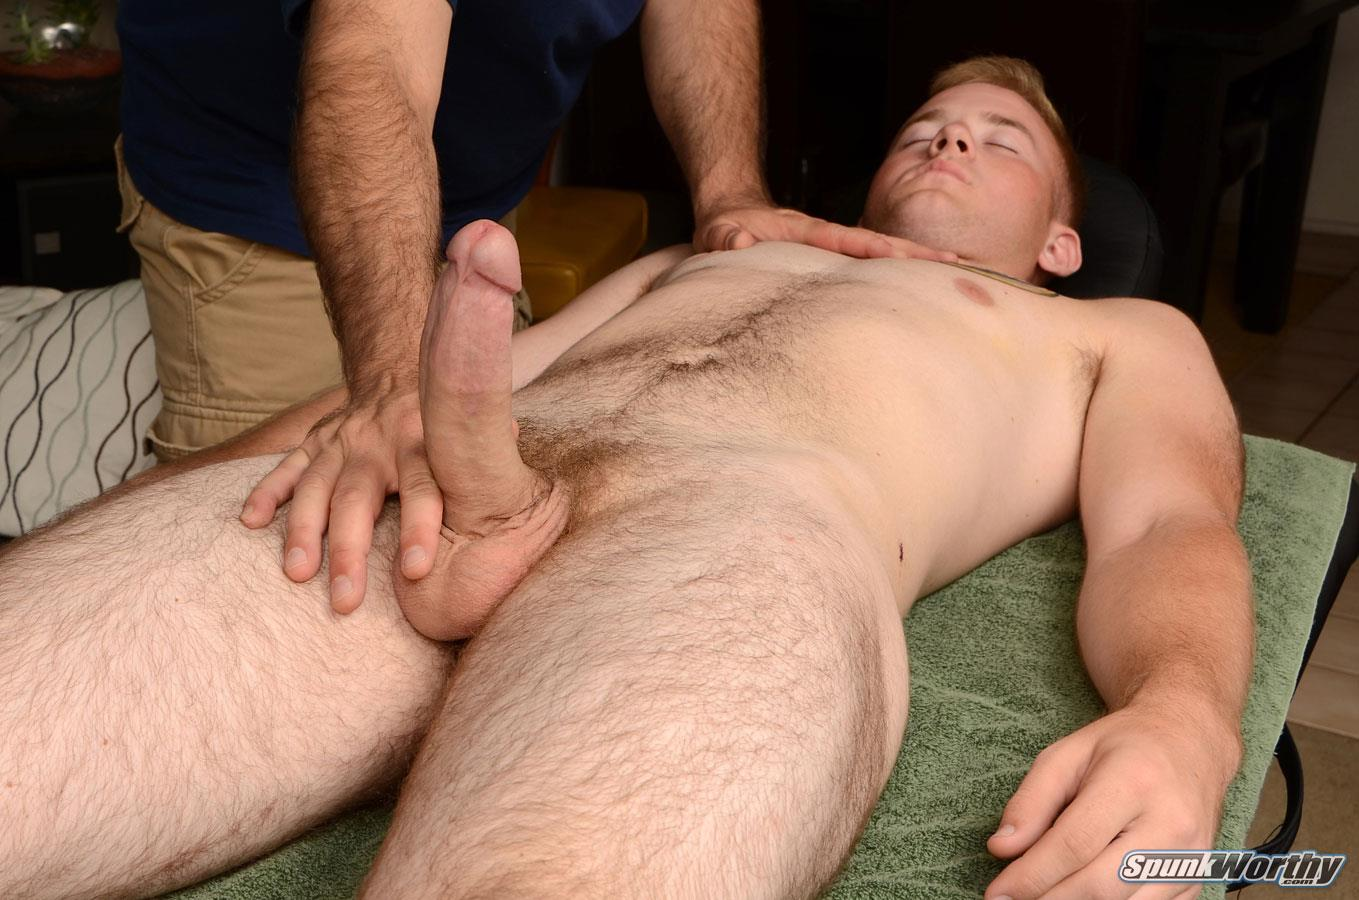 SpunkWorthy-Koury-Straight-19-year-old-gets-rimmed-and-cock-sucked-Amateur-Gay-Porn-21 Straight 19 Year Old Gets His First Gay Blow Job & Rimming